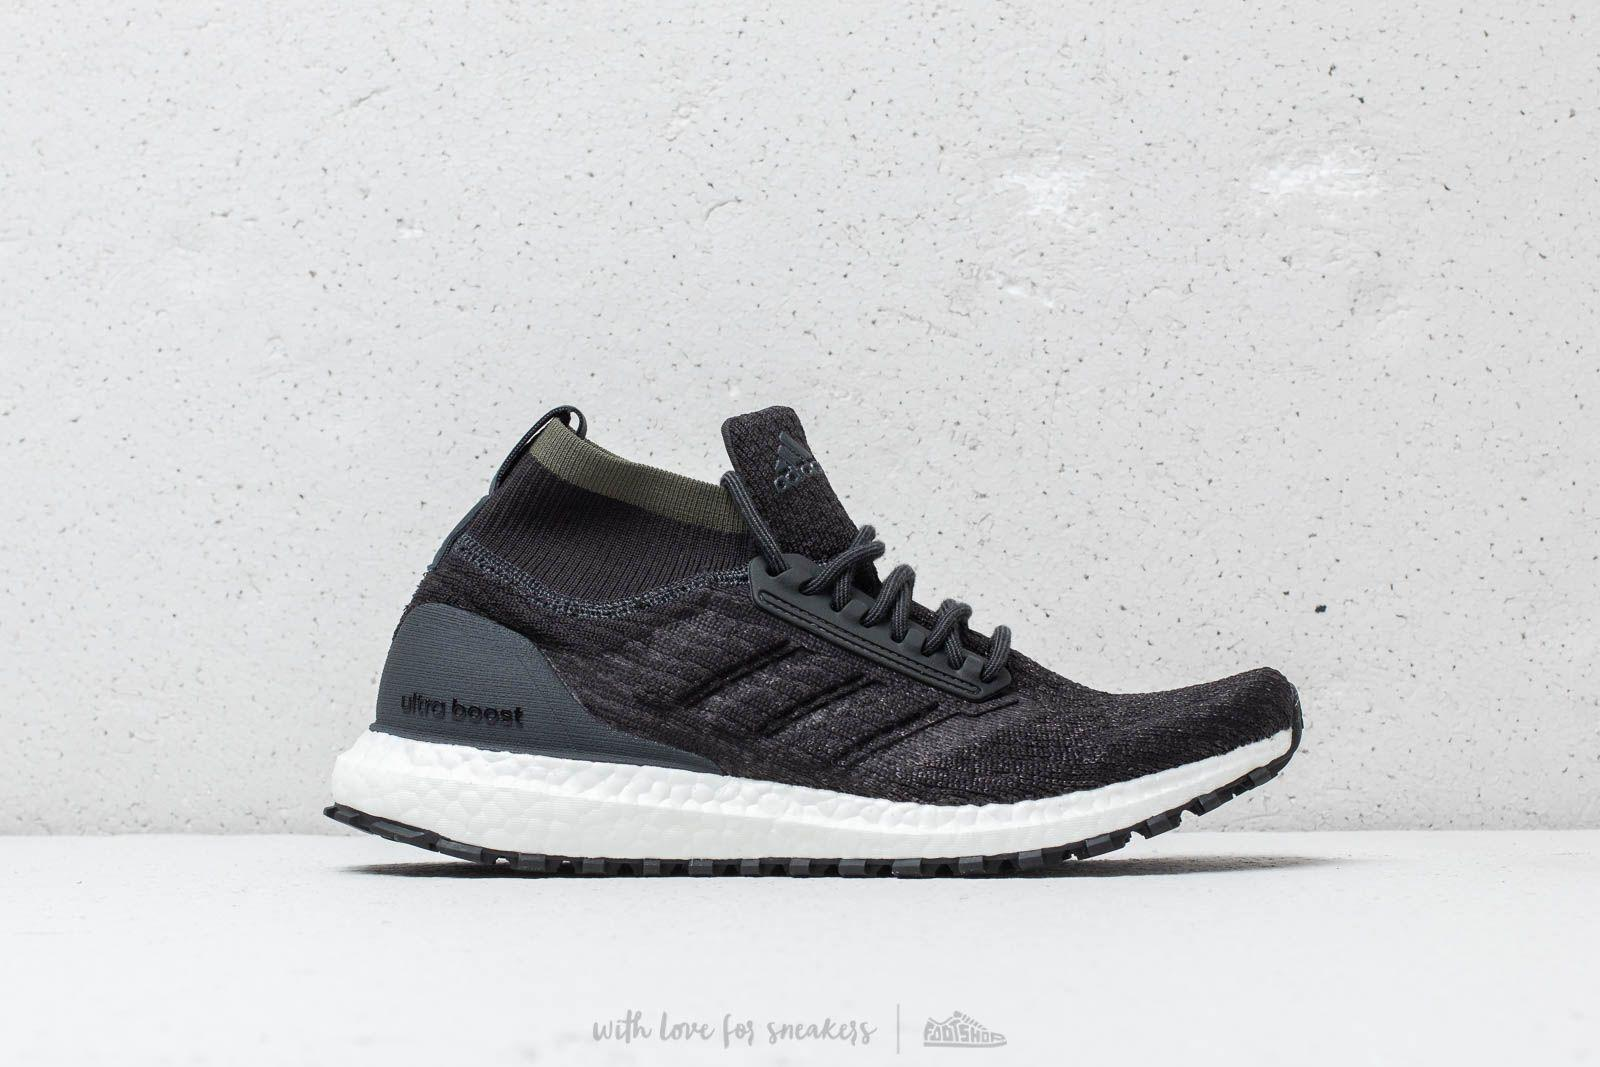 adidas Originals Adidas Ultraboost All Terrain Carbon Core